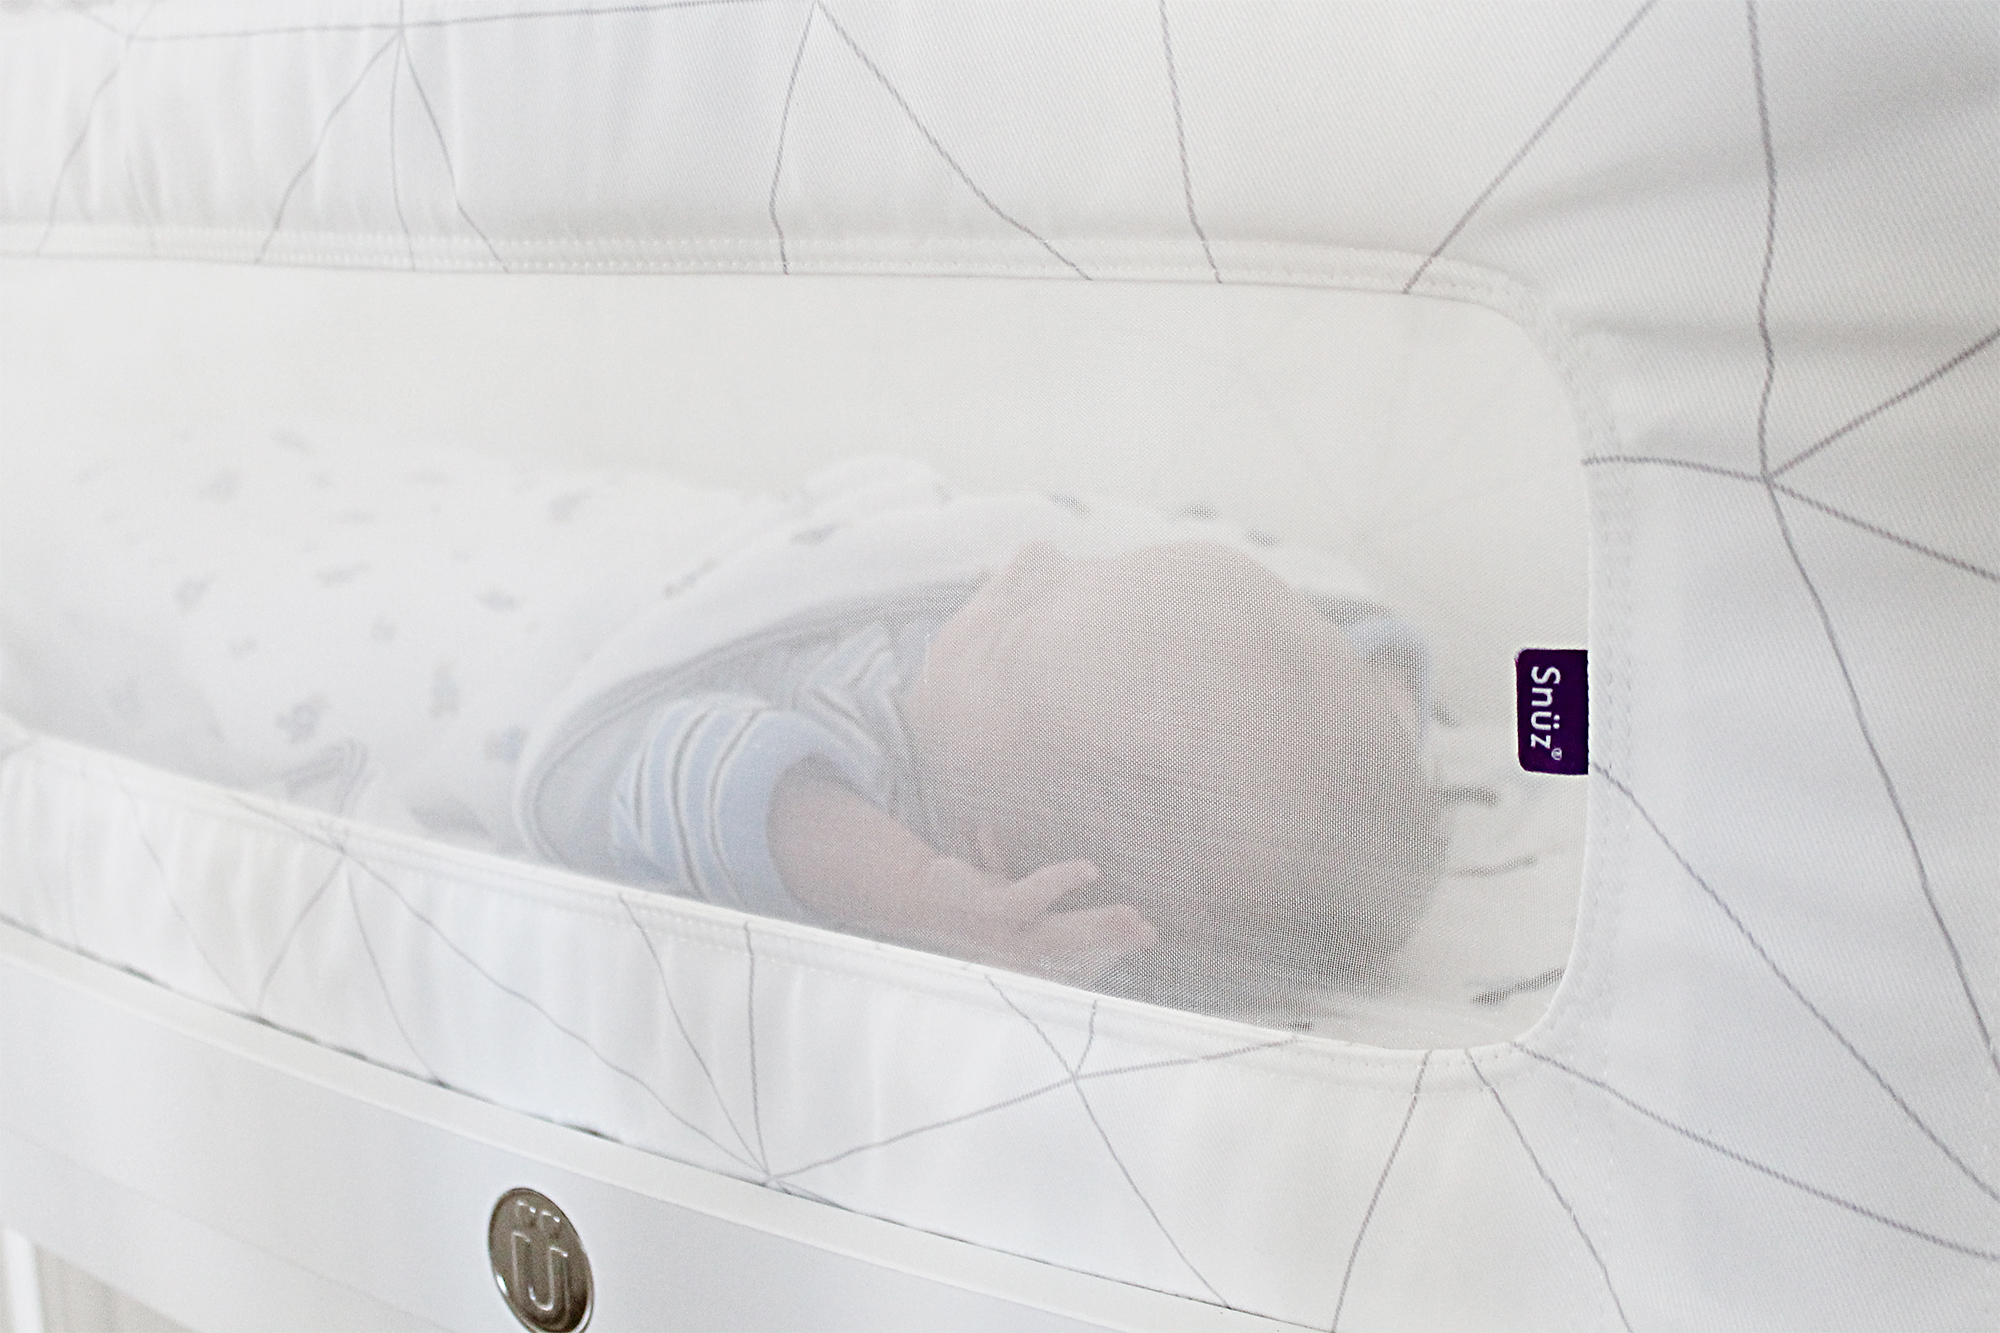 View of the side of a SnuzPod co-sleeper where a baby can be seen asleep in it through the mesh side